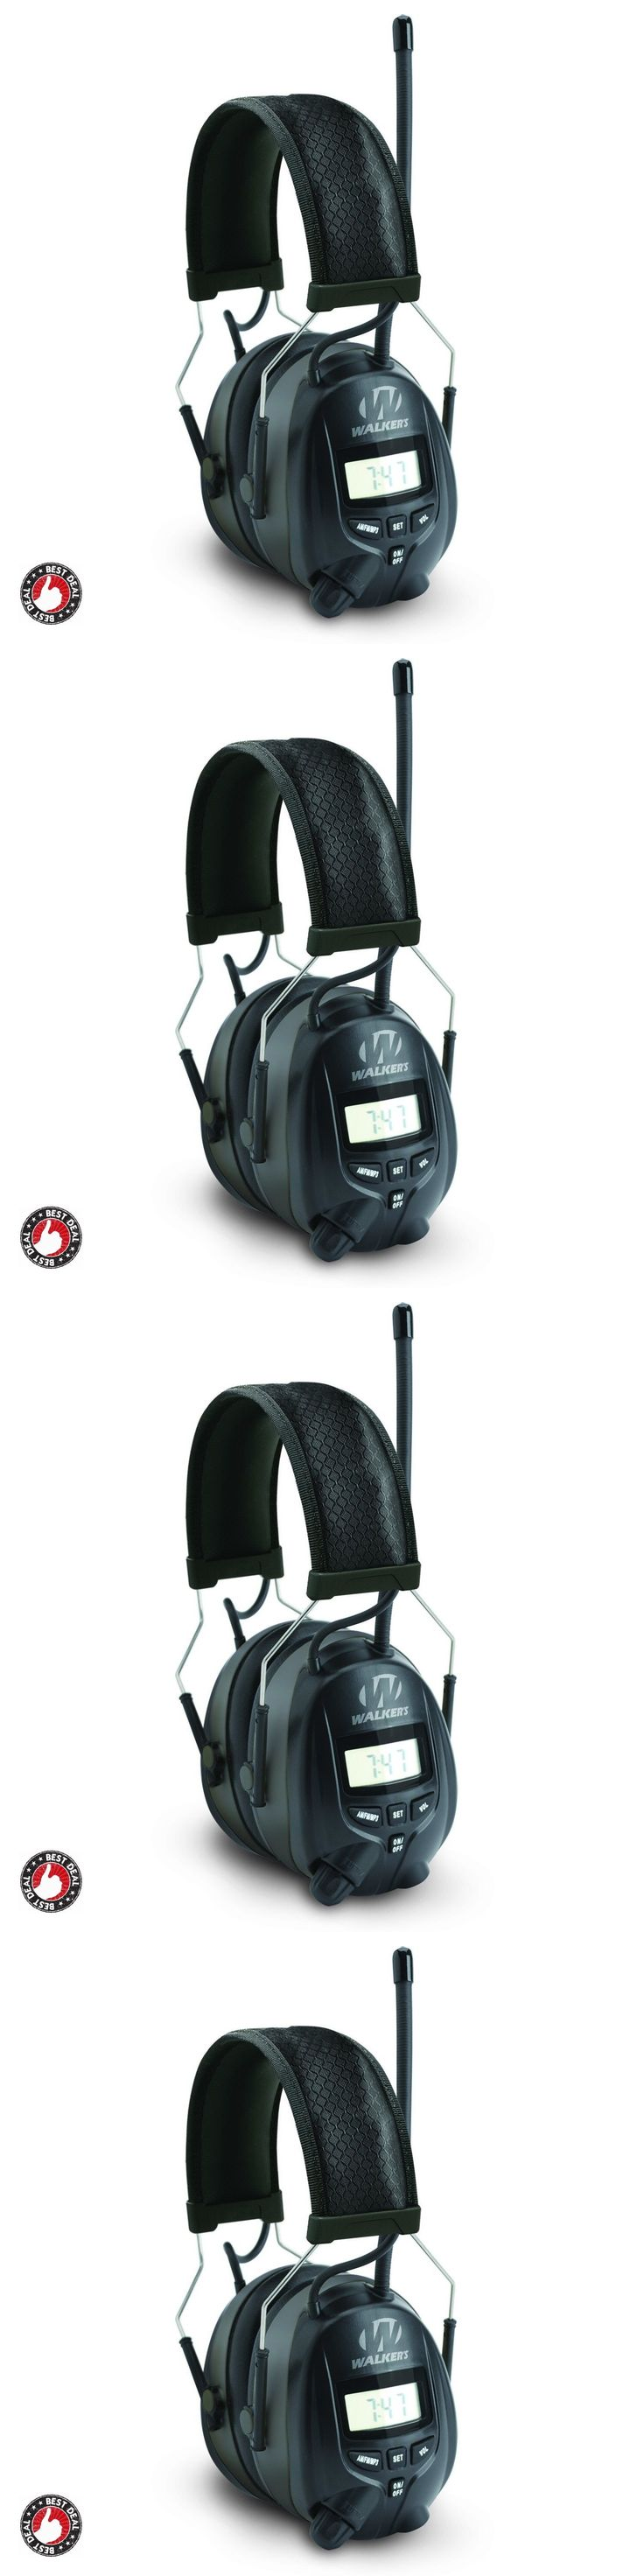 Hearing Protection 73942: Noise Cancelling Ear Muffs Am Fm Radio Headset Protection Hearing Shooting Mp3 -> BUY IT NOW ONLY: $66.81 on eBay!